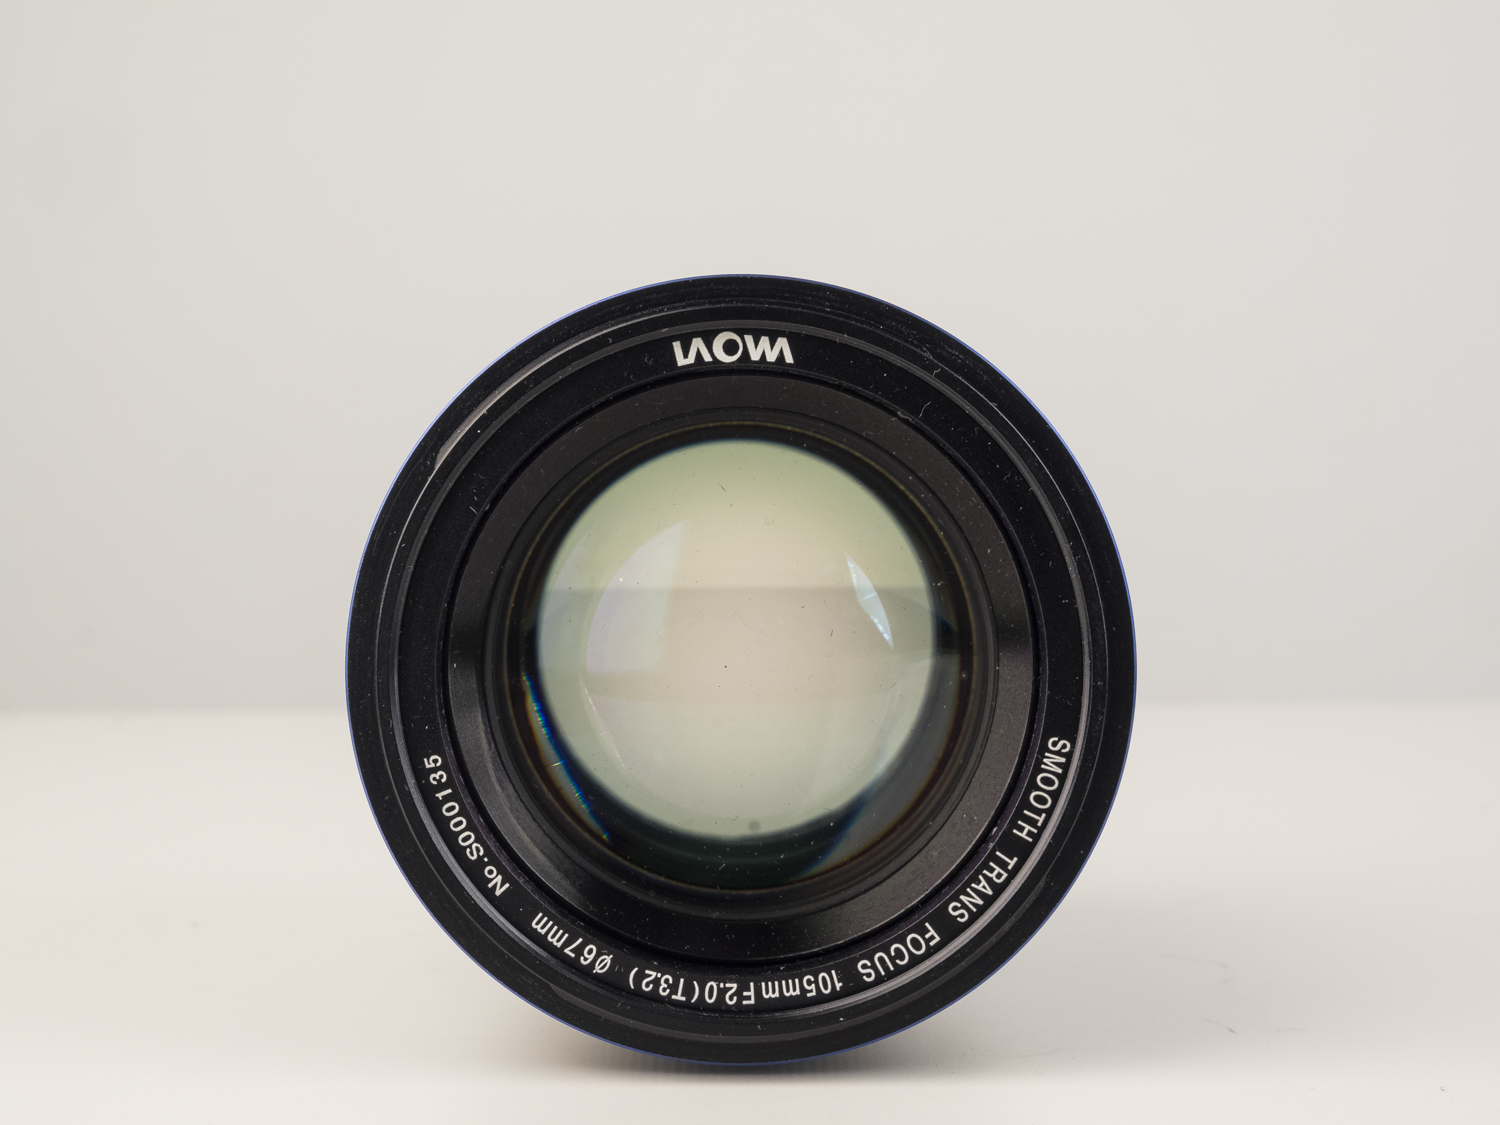 laowa 105mm f2 STF lens product images 04.jpg